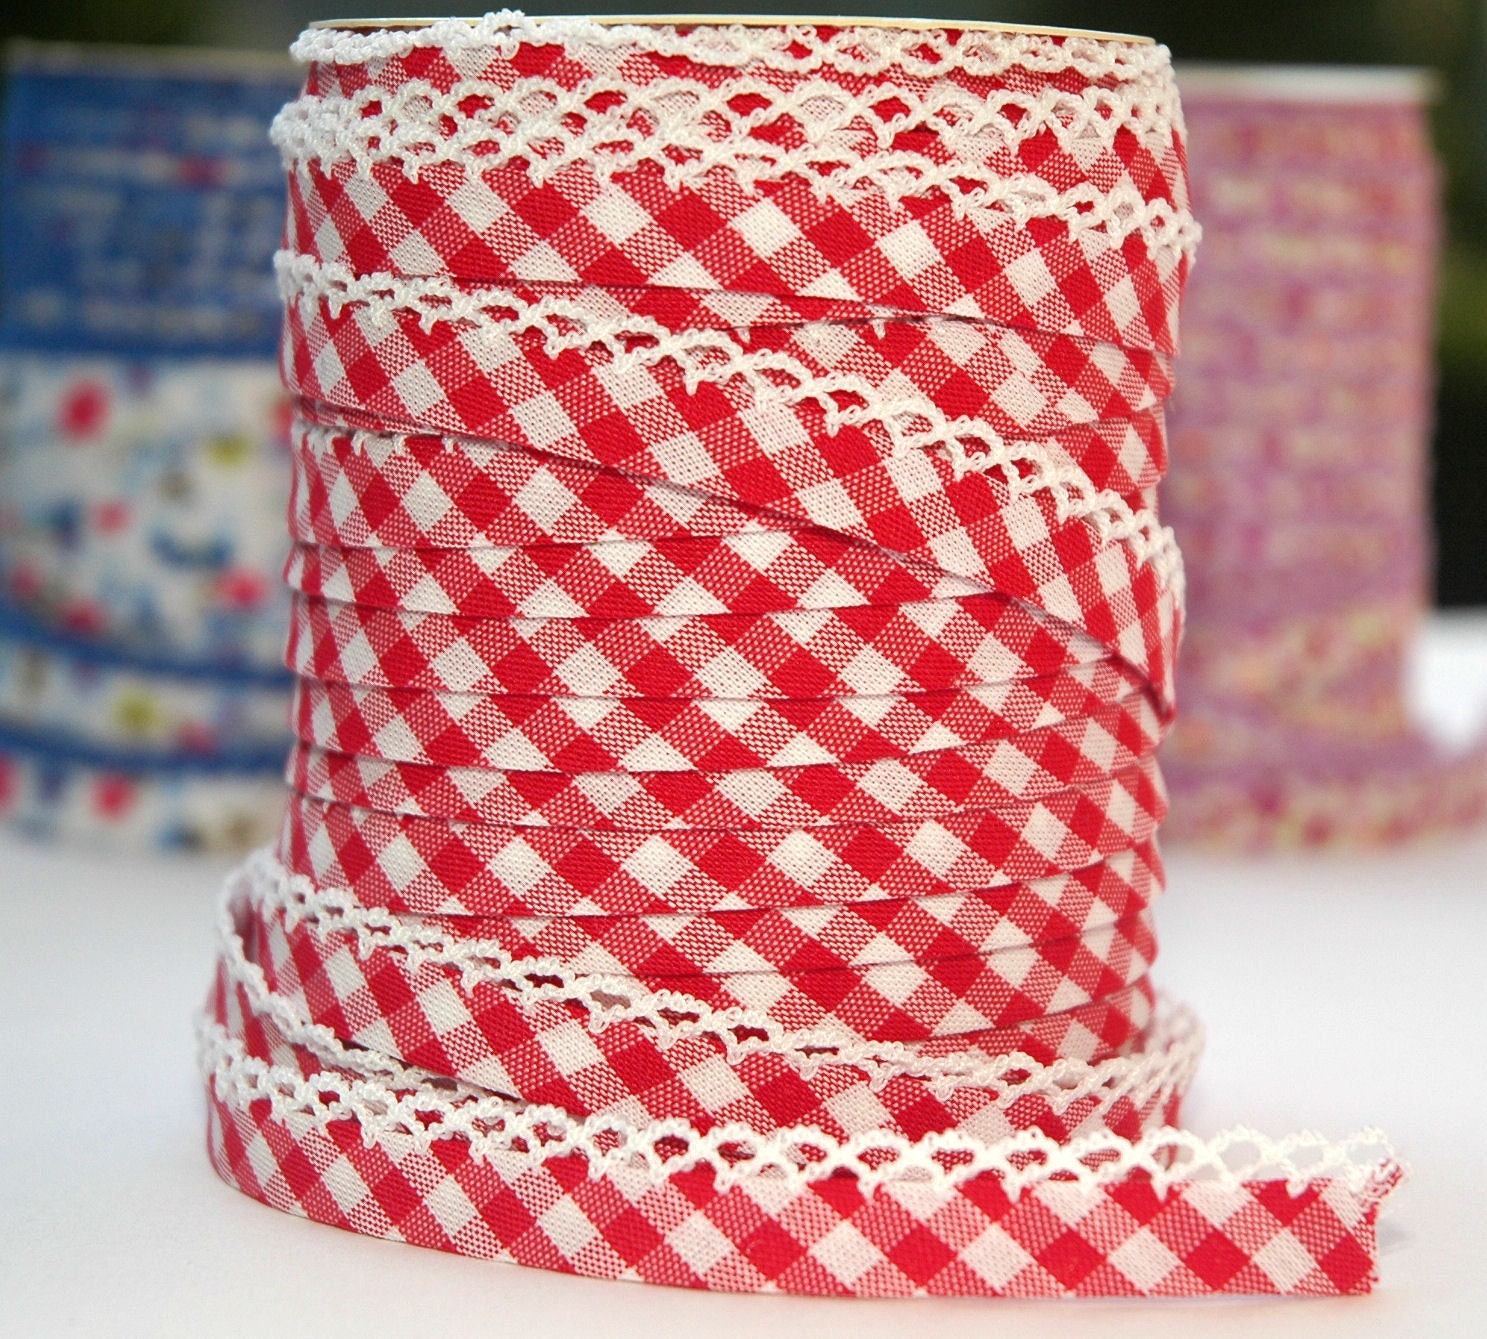 Bias Tape  Double Fold  Red Gingham Cotton and Lace Crochet - HollandFabricHouse